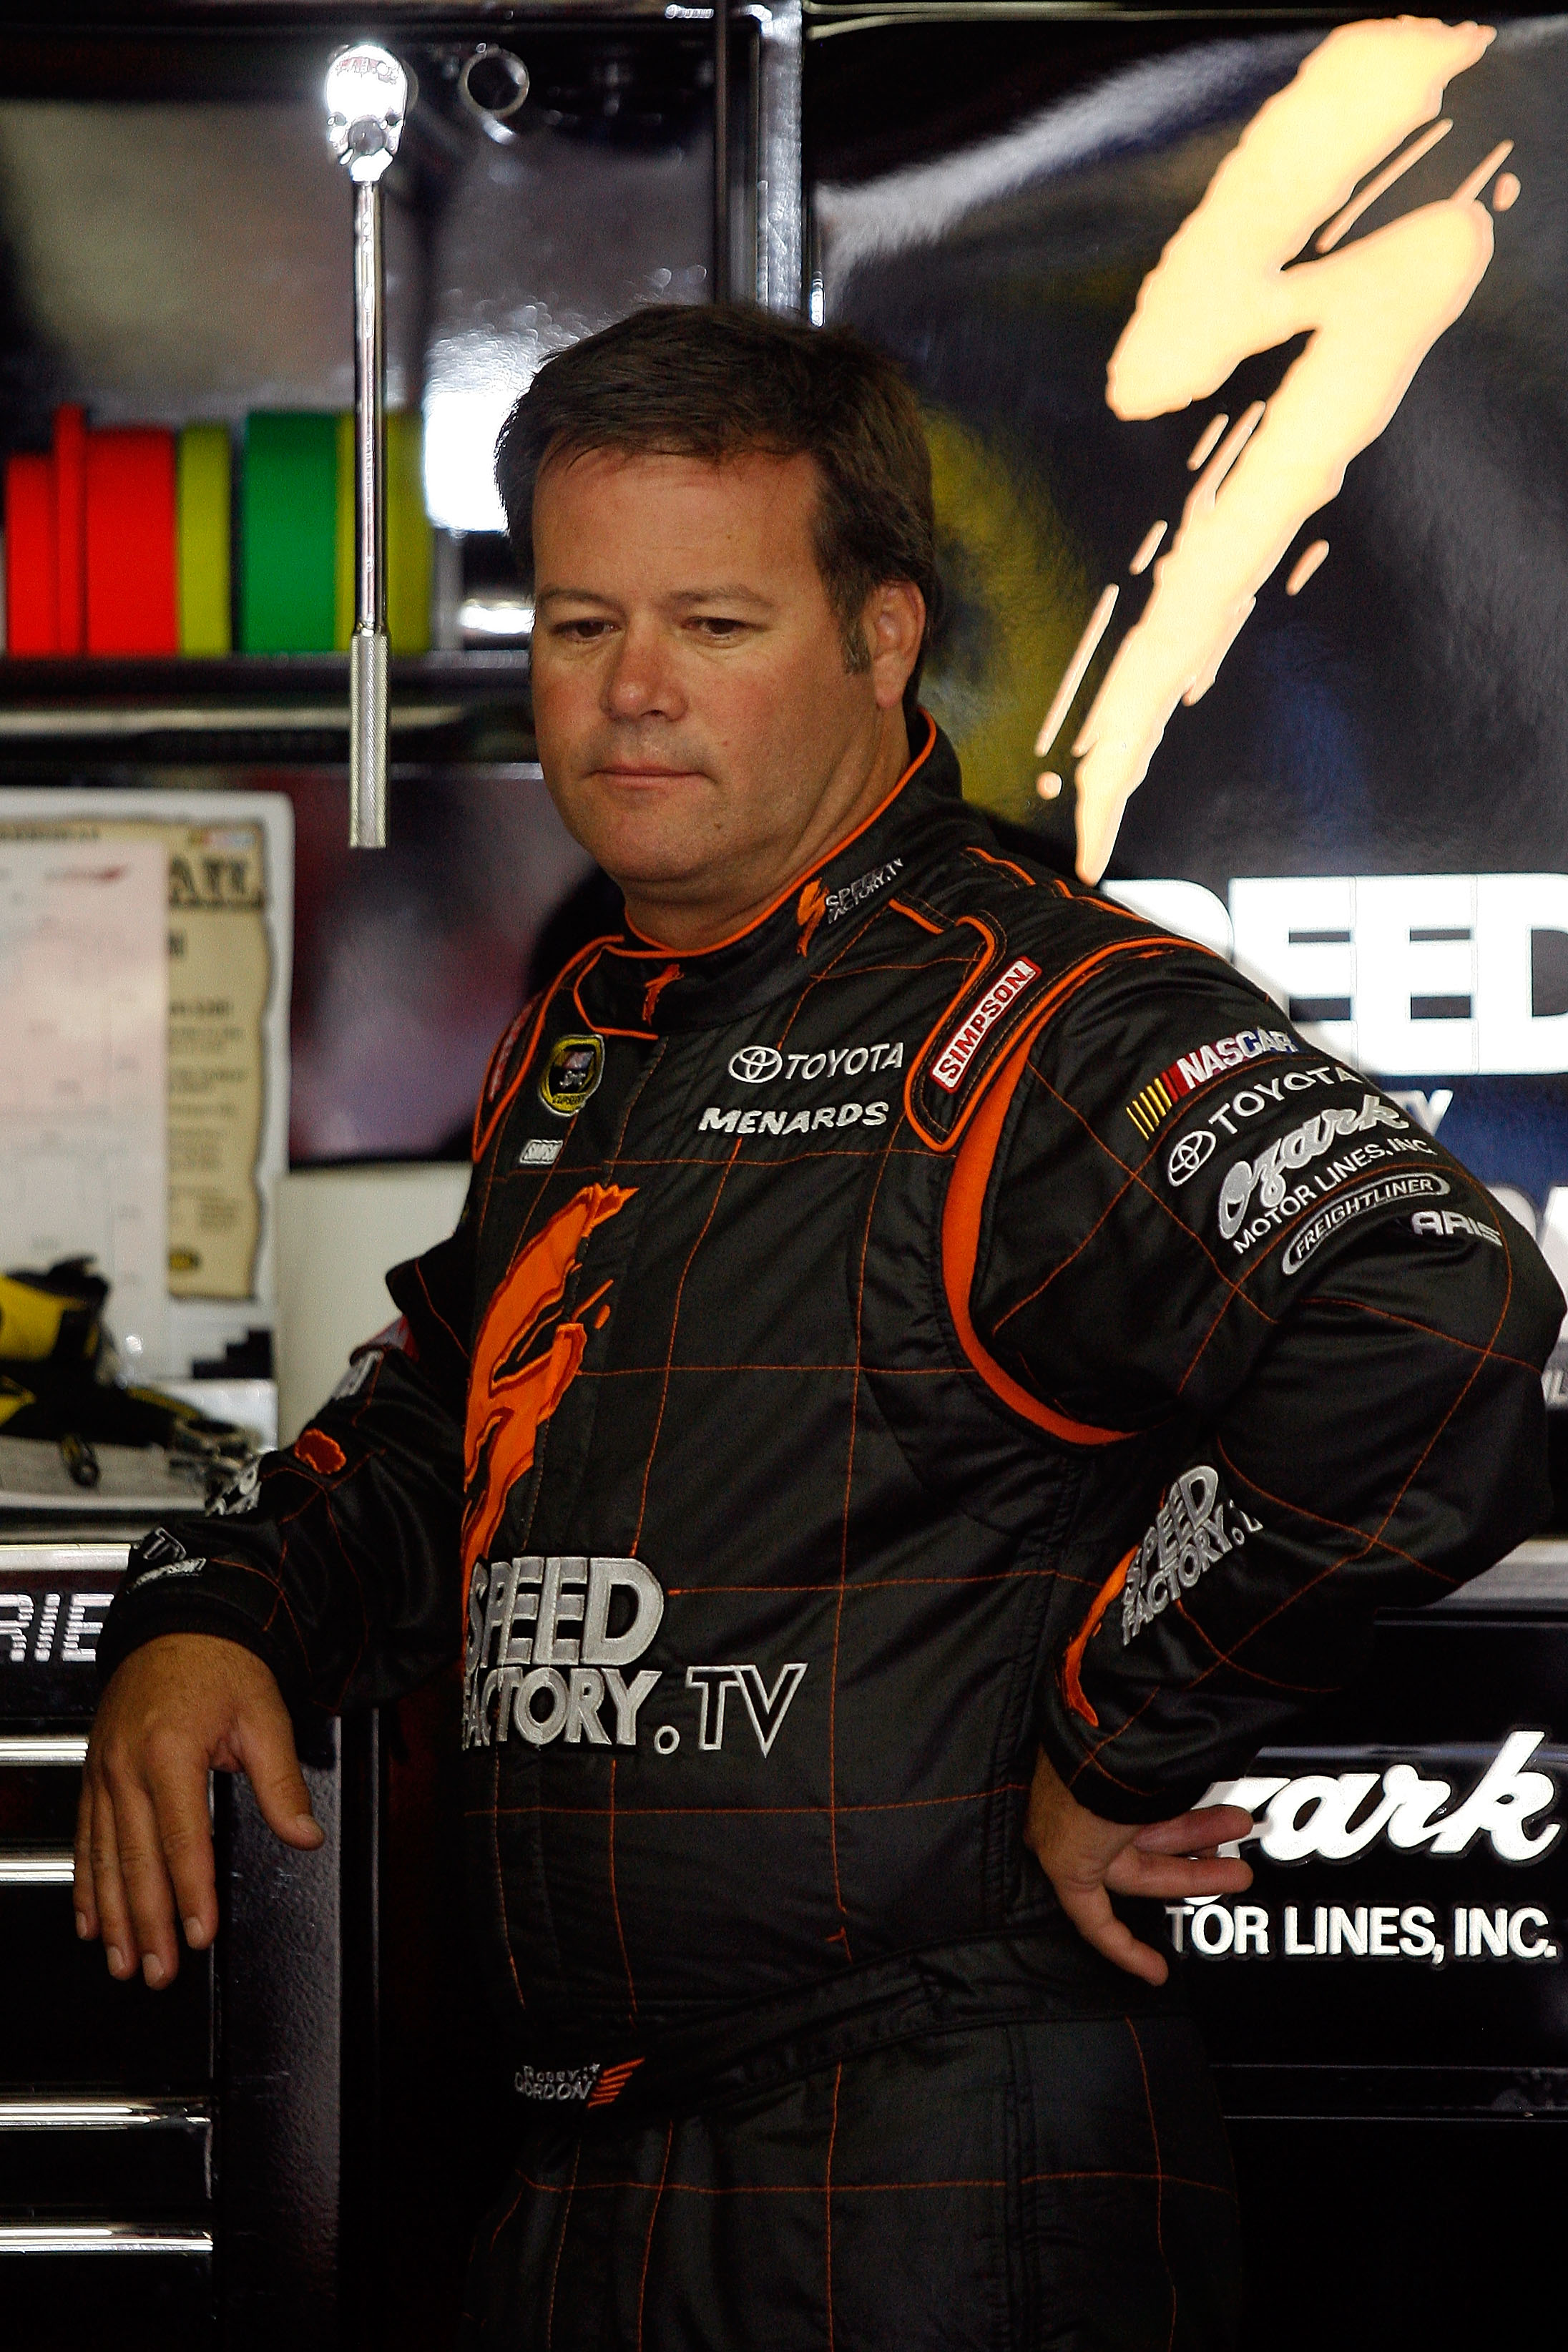 LOUDON, NH - SEPTEMBER 18:  Robby Gordon, driver of the #7 SpeedFactory.TV Toyota, looks on in the garage during practice for the NASCAR Sprint Cup Series Sylvania 300 at New Hampshire Motor Speedway on September 18, 2010 in Loudon, New Hampshire.  (Photo